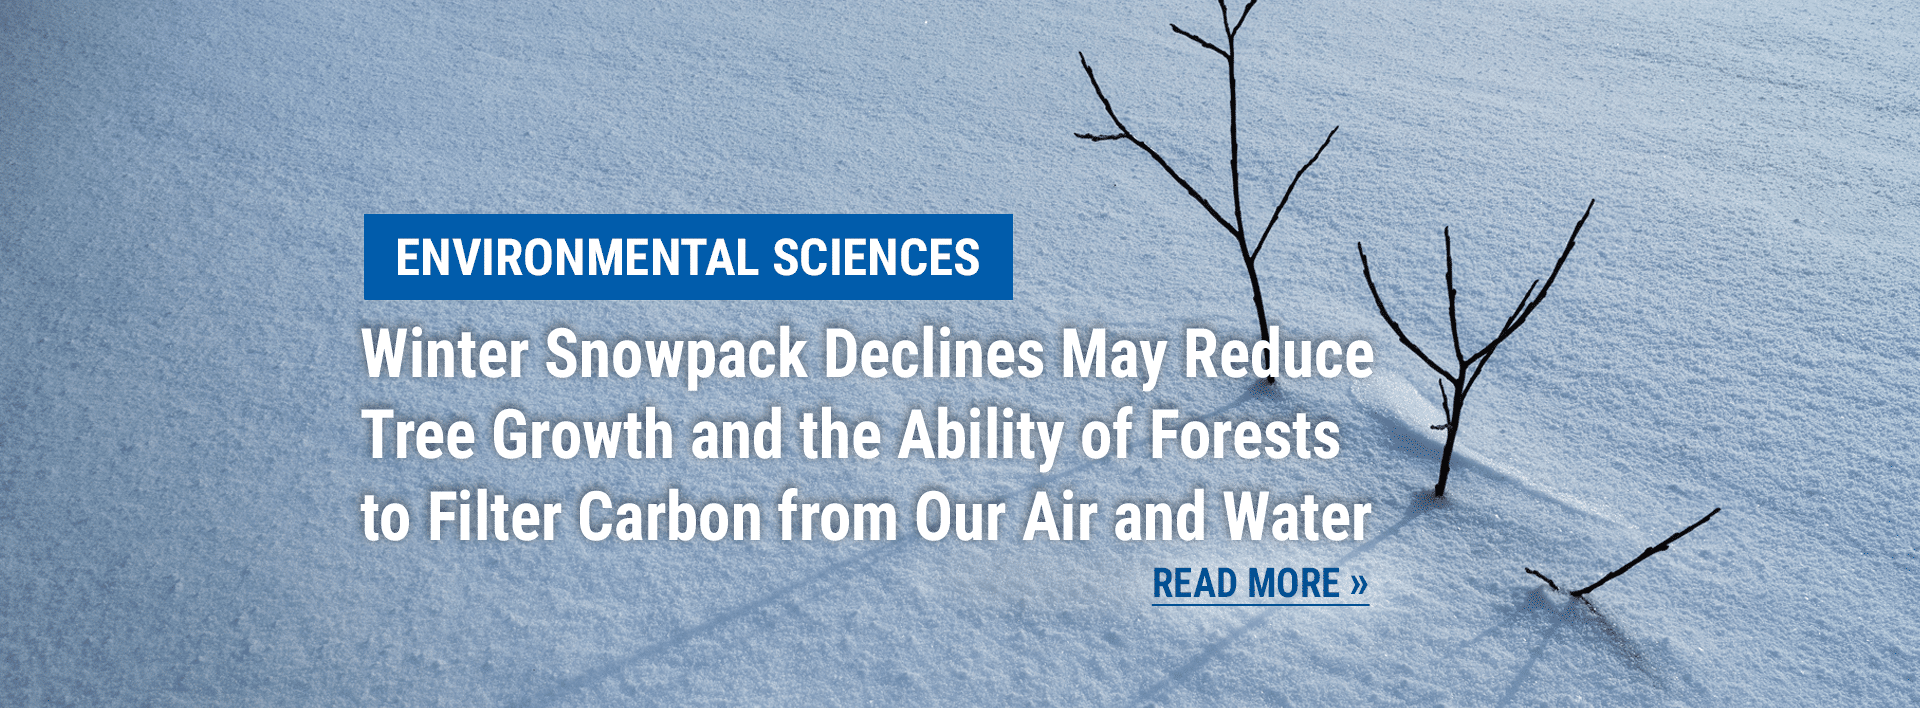 Environmental Science news: Study Shows Winter Snowpack Declines May Reduce Tree Growth and the Ability of Forests to Filter Carbon from Our Air and Water